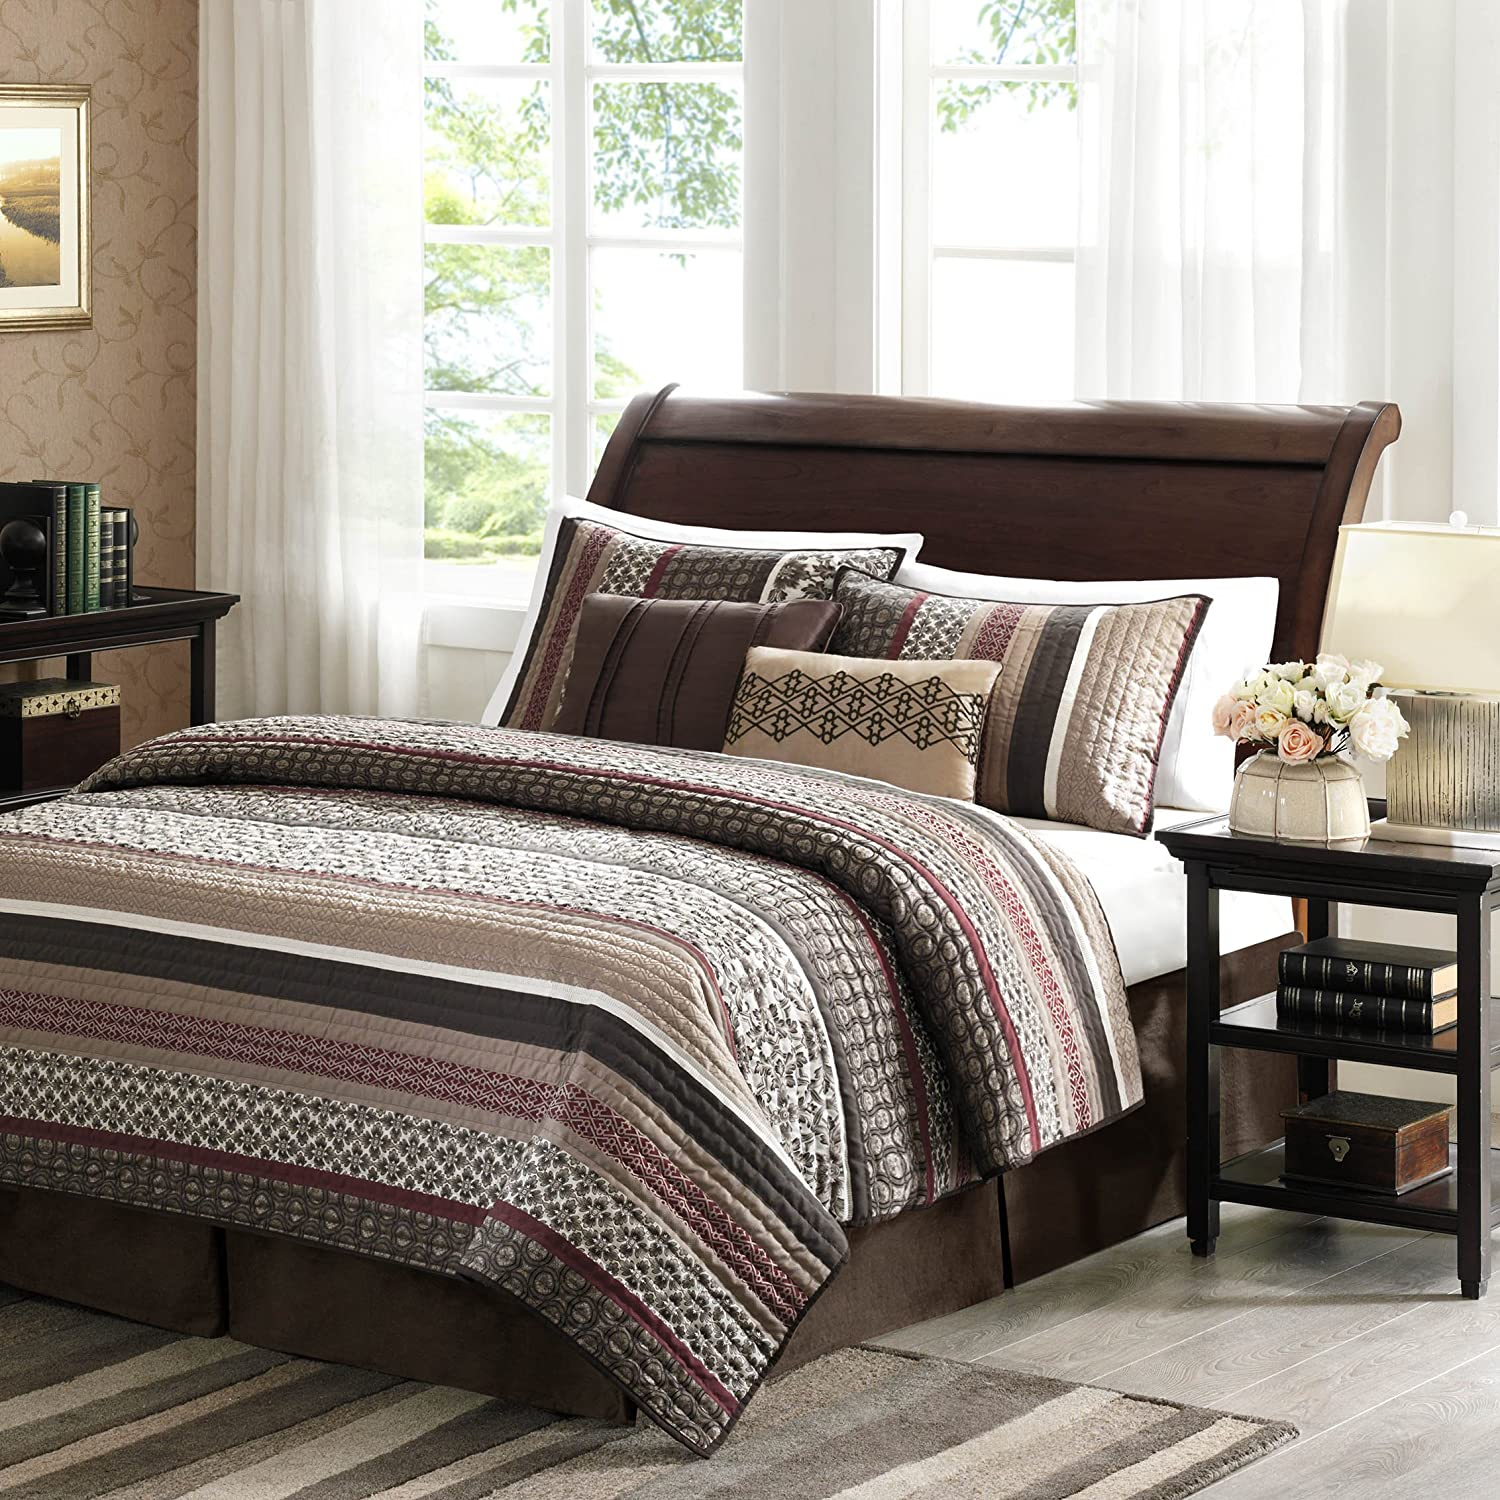 Madison Park Princeton King Size Quilt Bedding Set - Crimson Red, Jacquard Patterned Striped